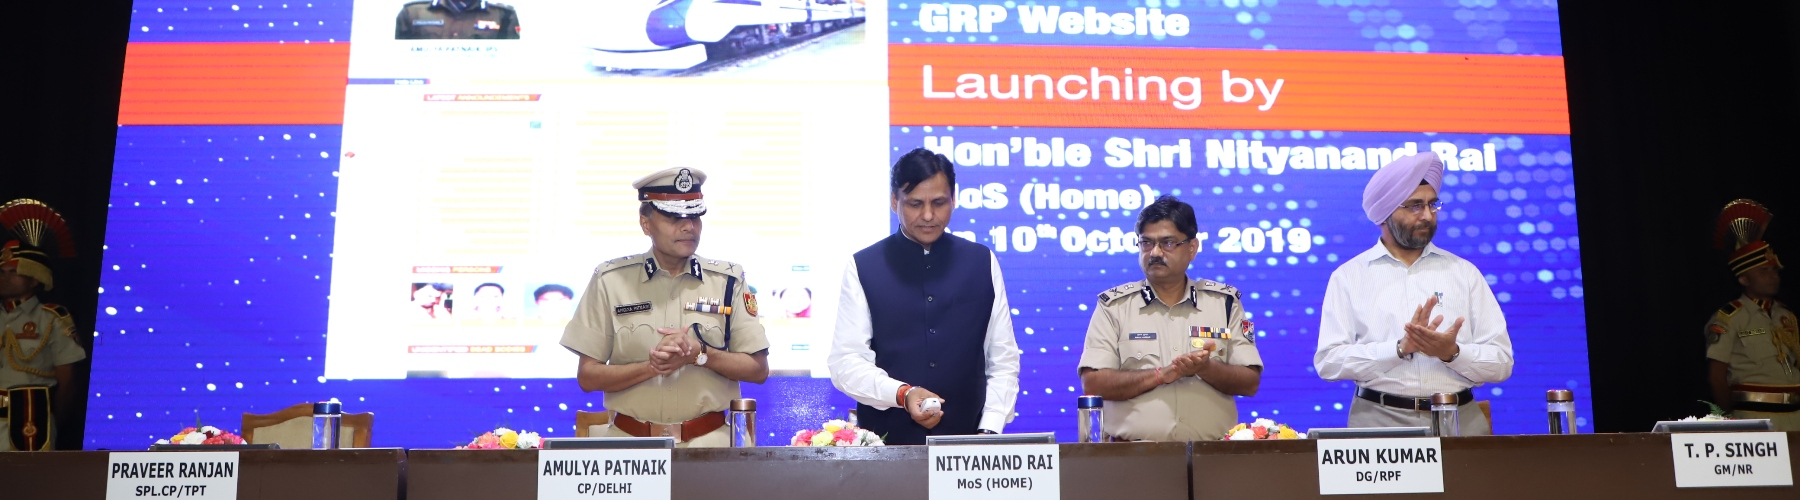 Union Minister of State for Home Affairs, Shri Nityanand Rai, launching the Website for Government Railway Police (GRP) and 'Sahyatri' Mobile App of Delhi Railway Police, in New Delhi on October 10, 2019.